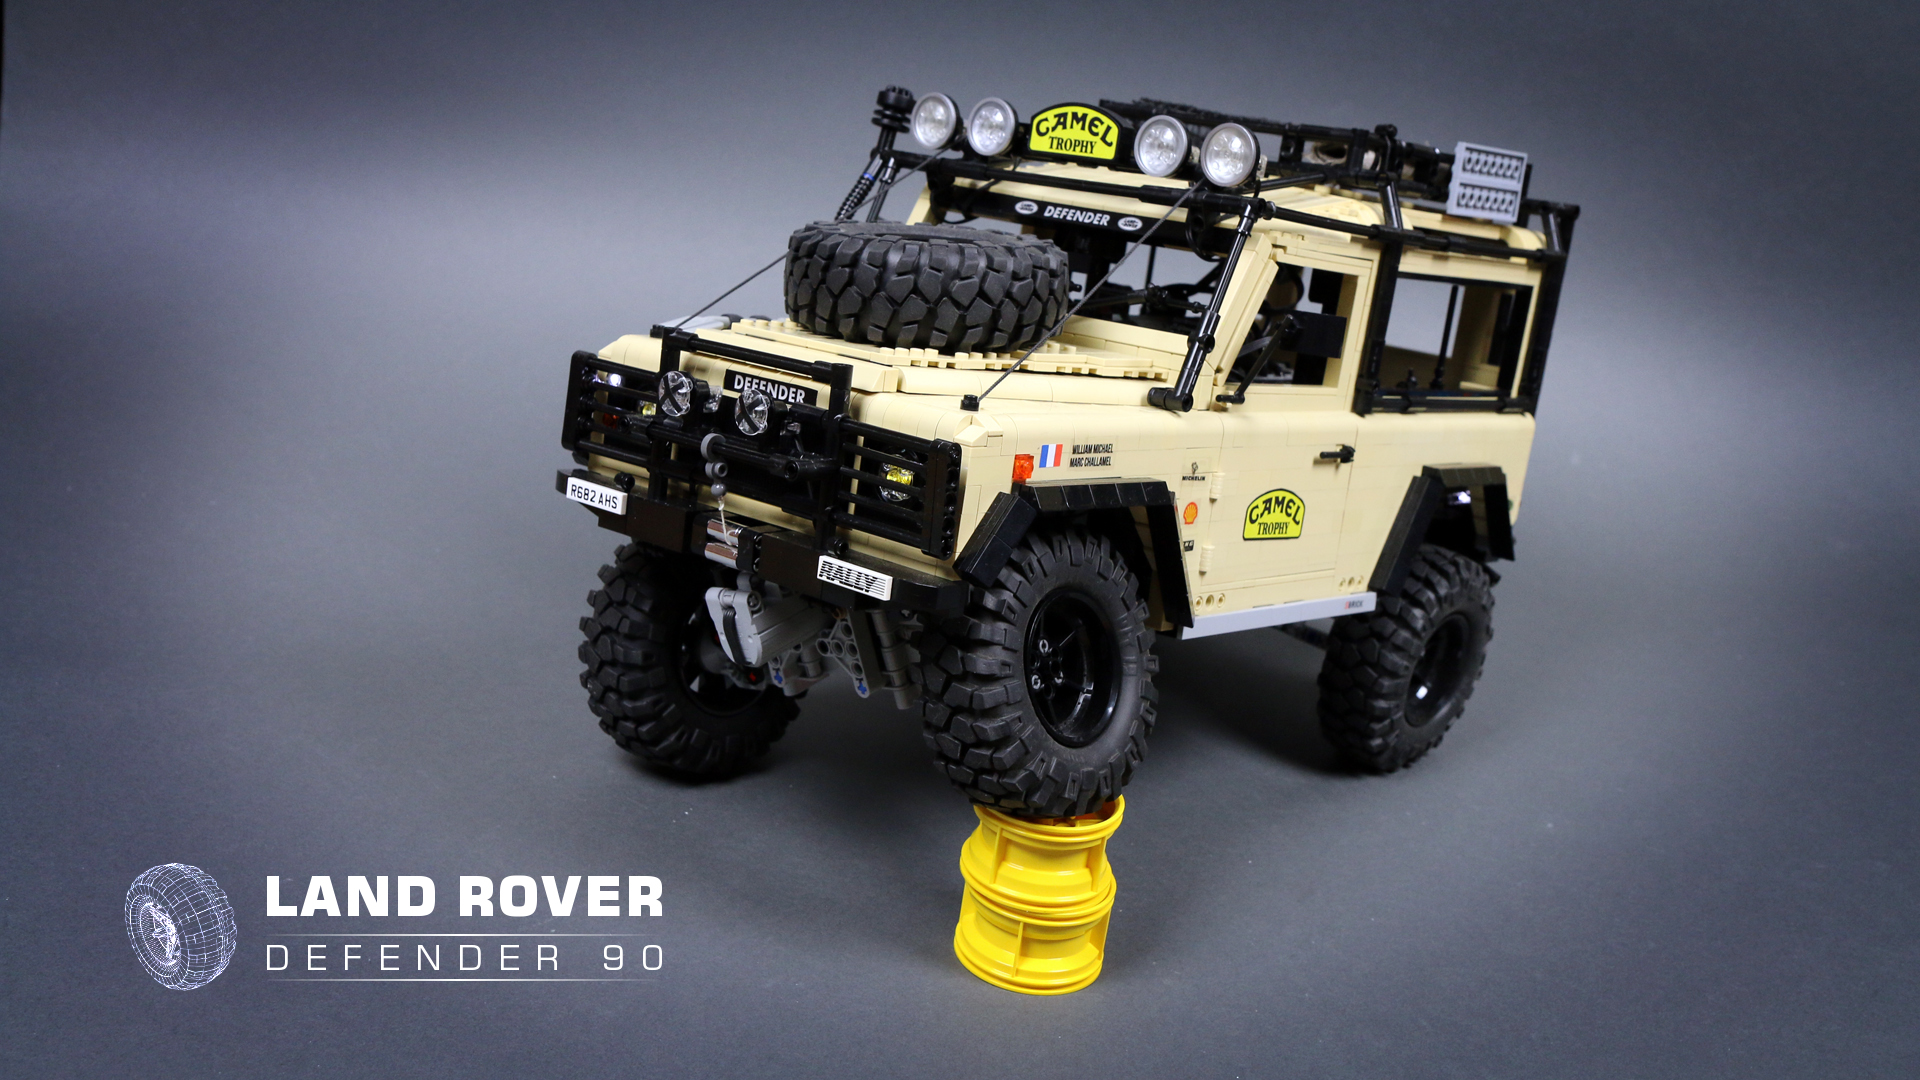 lego land rover defender 90 instructions